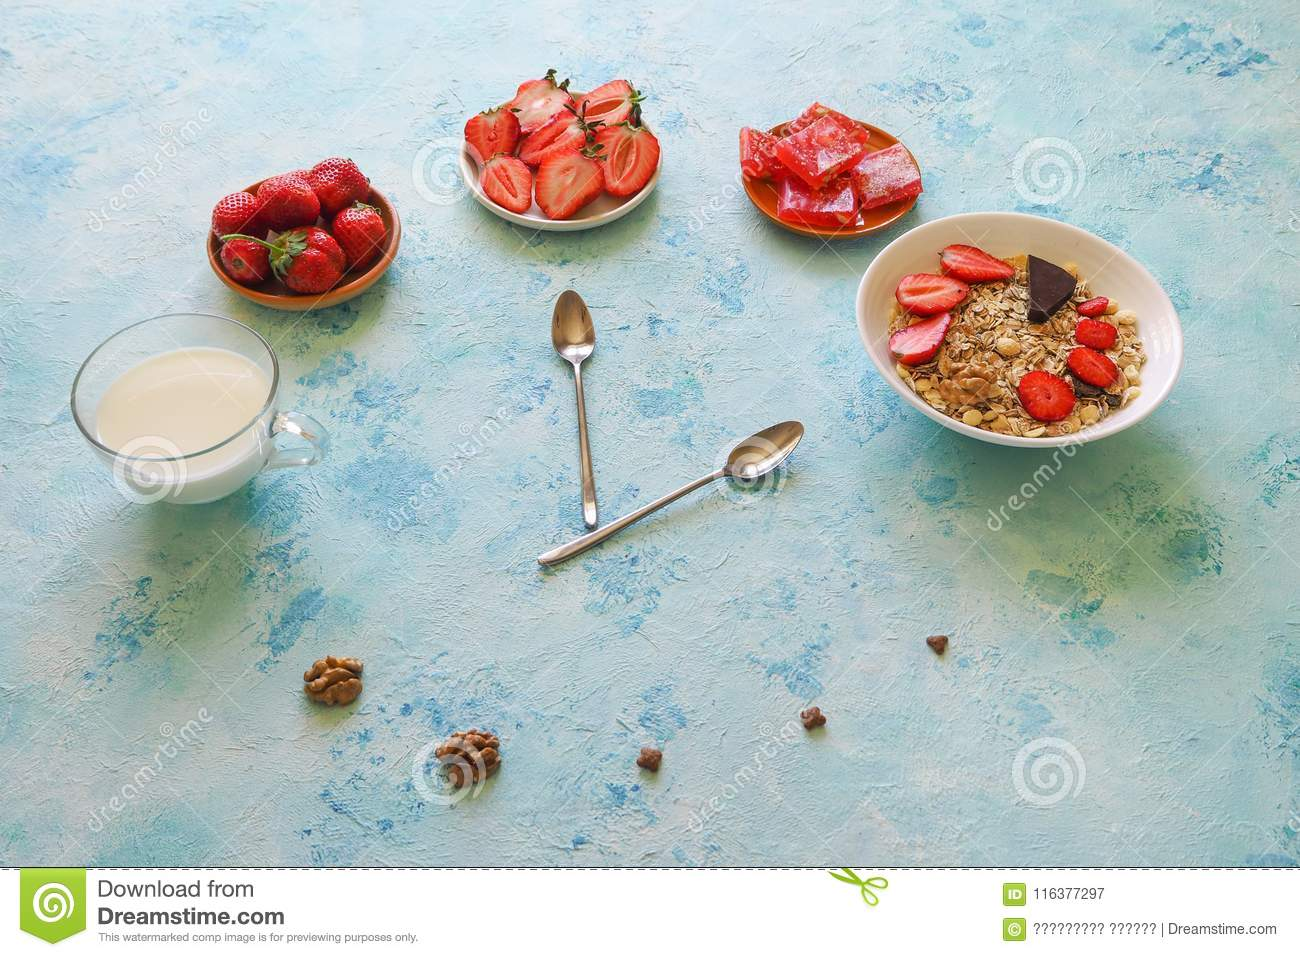 Strawberry, Muesli, Milk And Turkish Delight On A Turquoise Table ...